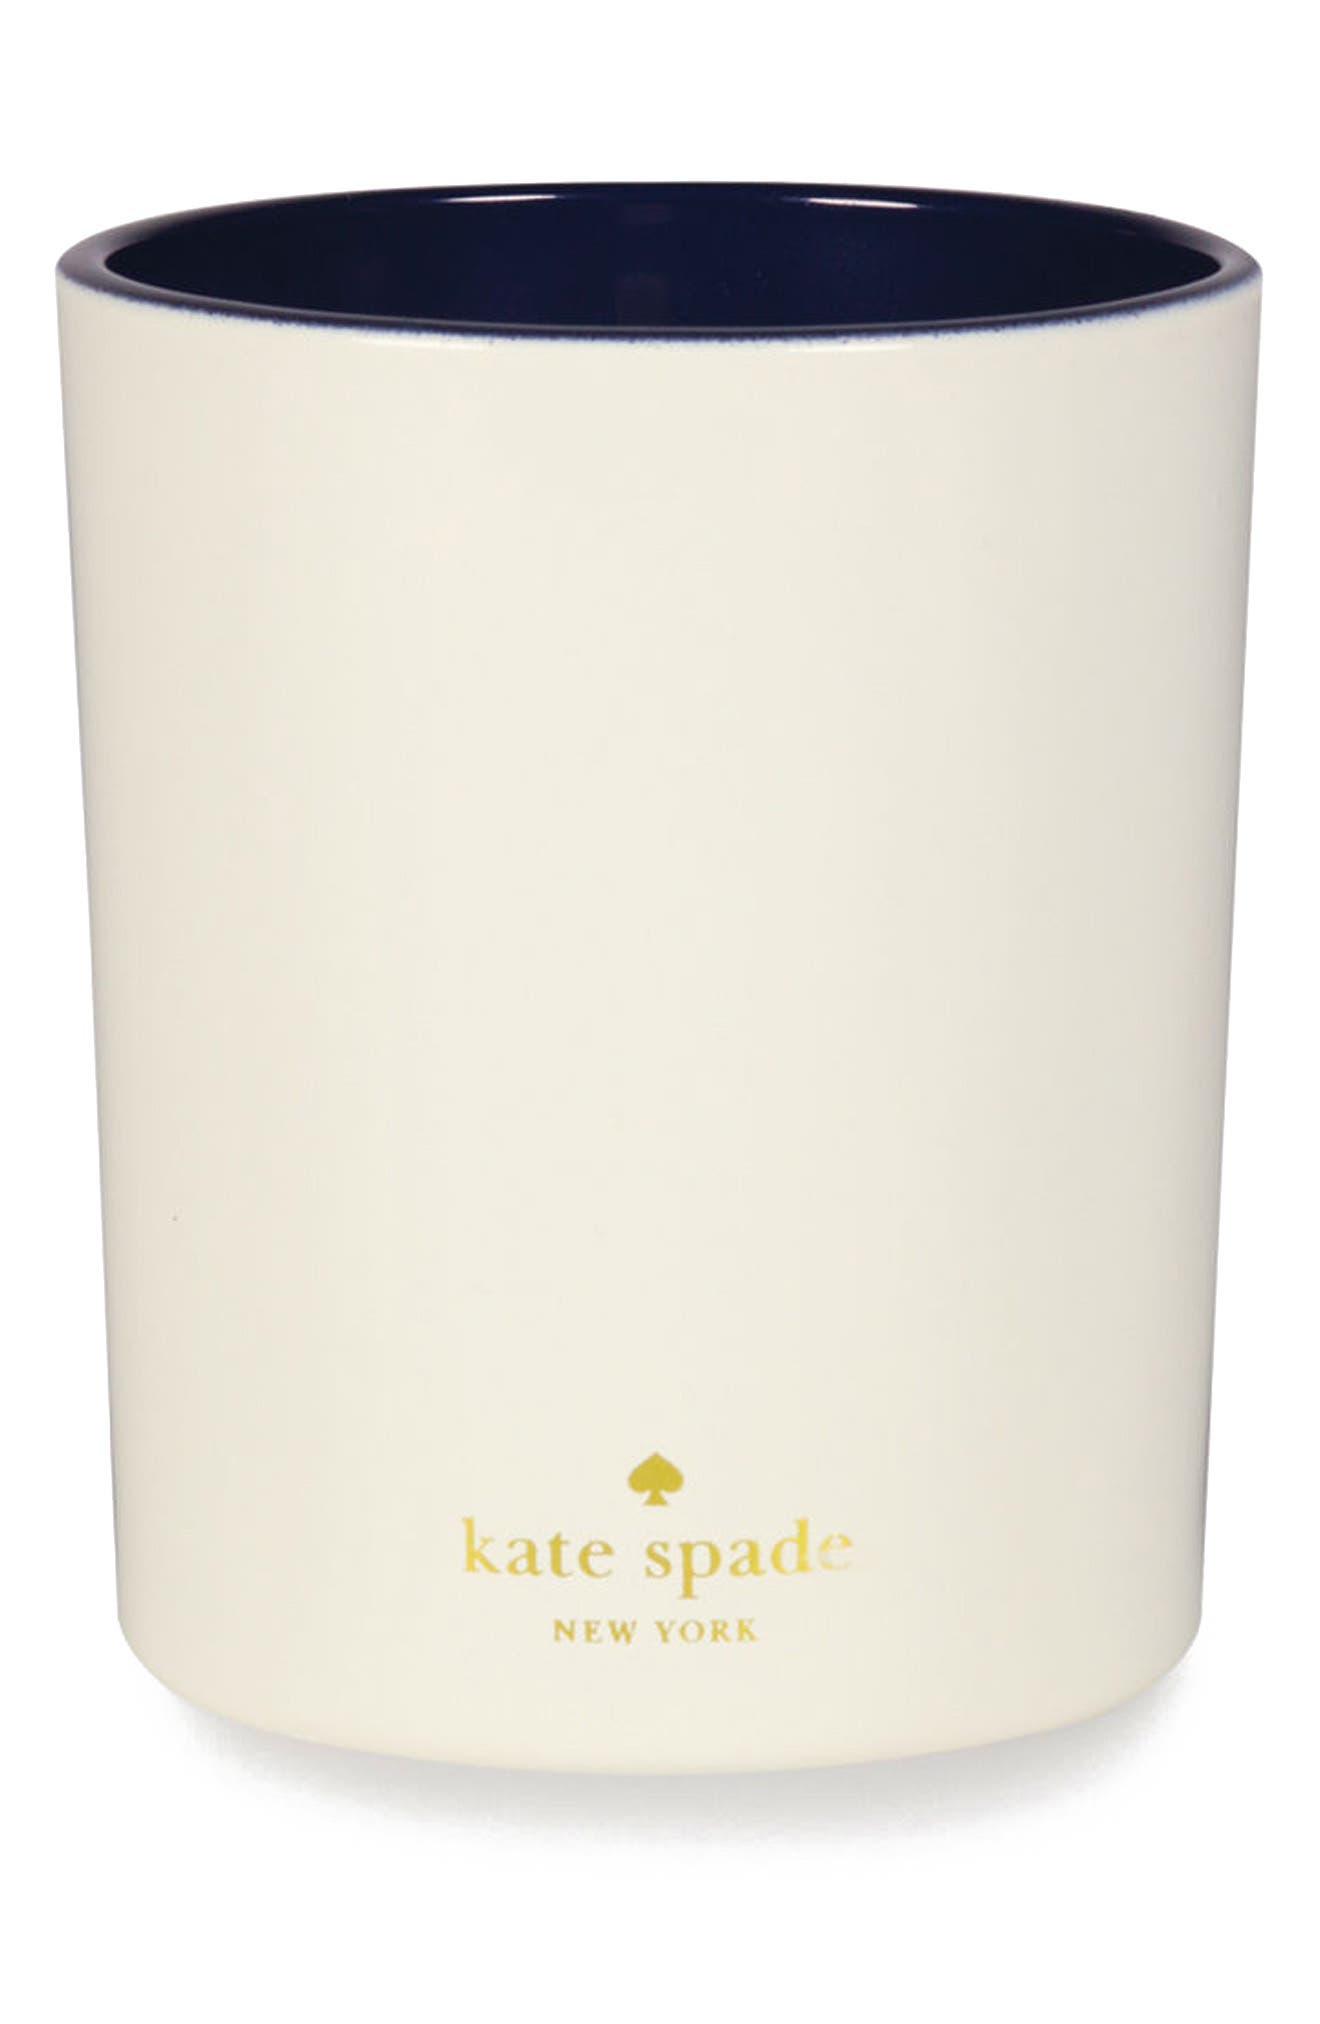 kate spade new york large scented candle